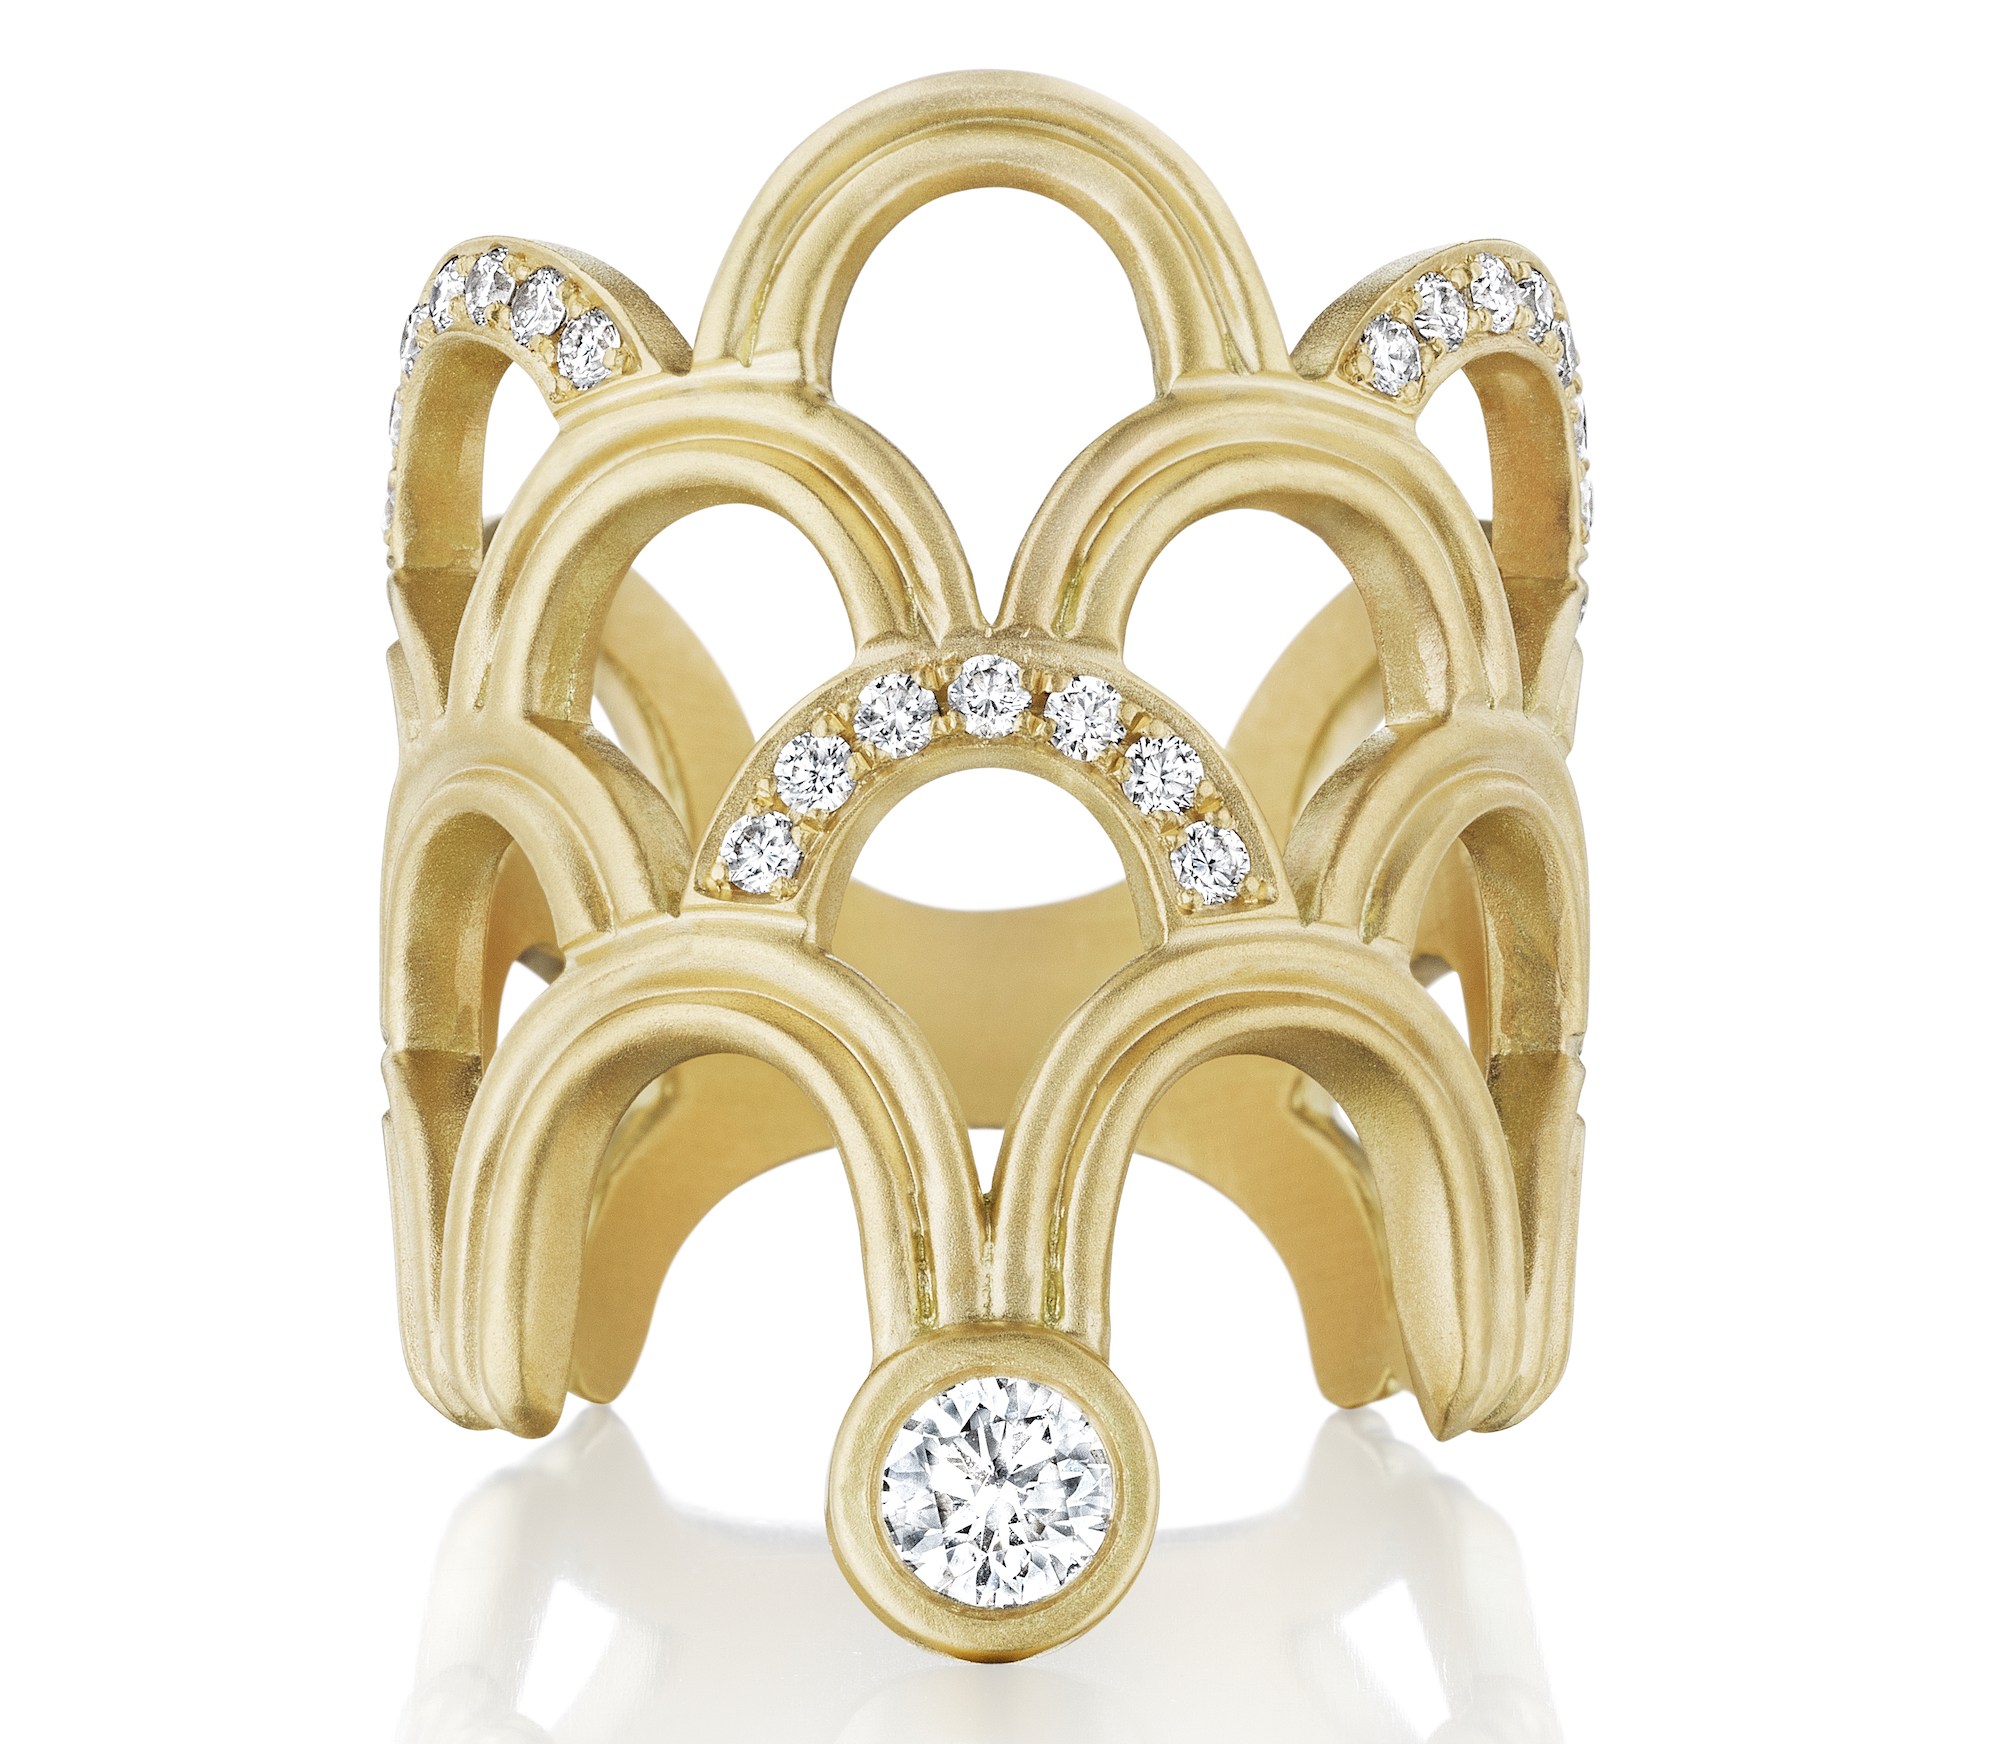 Doryn Wallach Normandie collection ring | JCK On Your Market